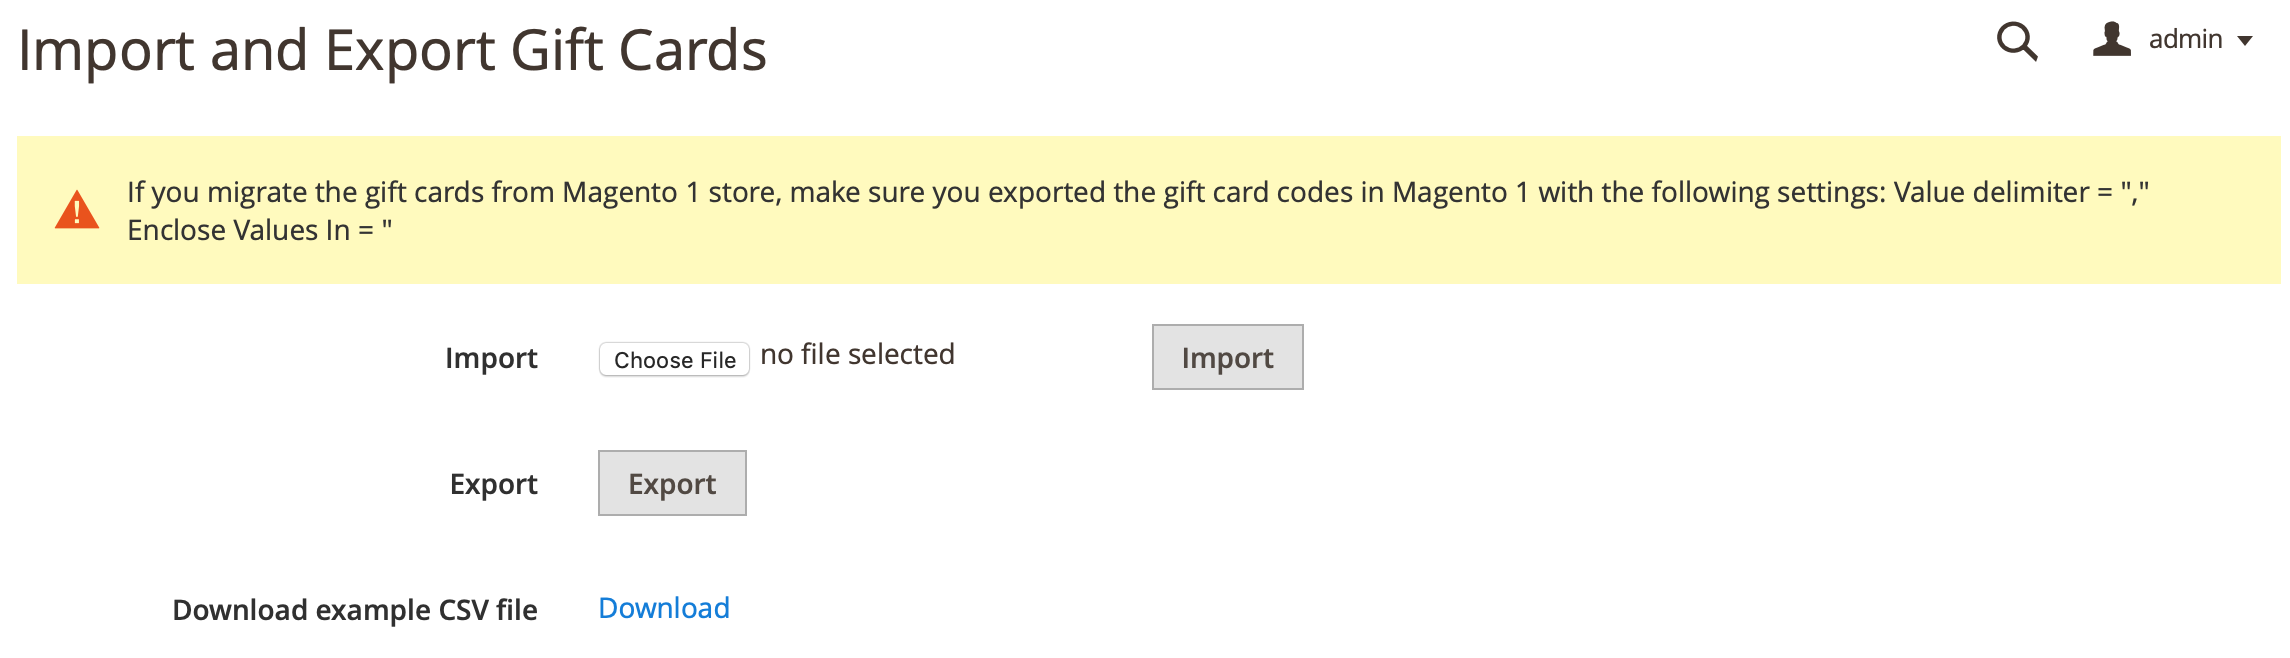 Mageworx Gift Card Codes Import/Export